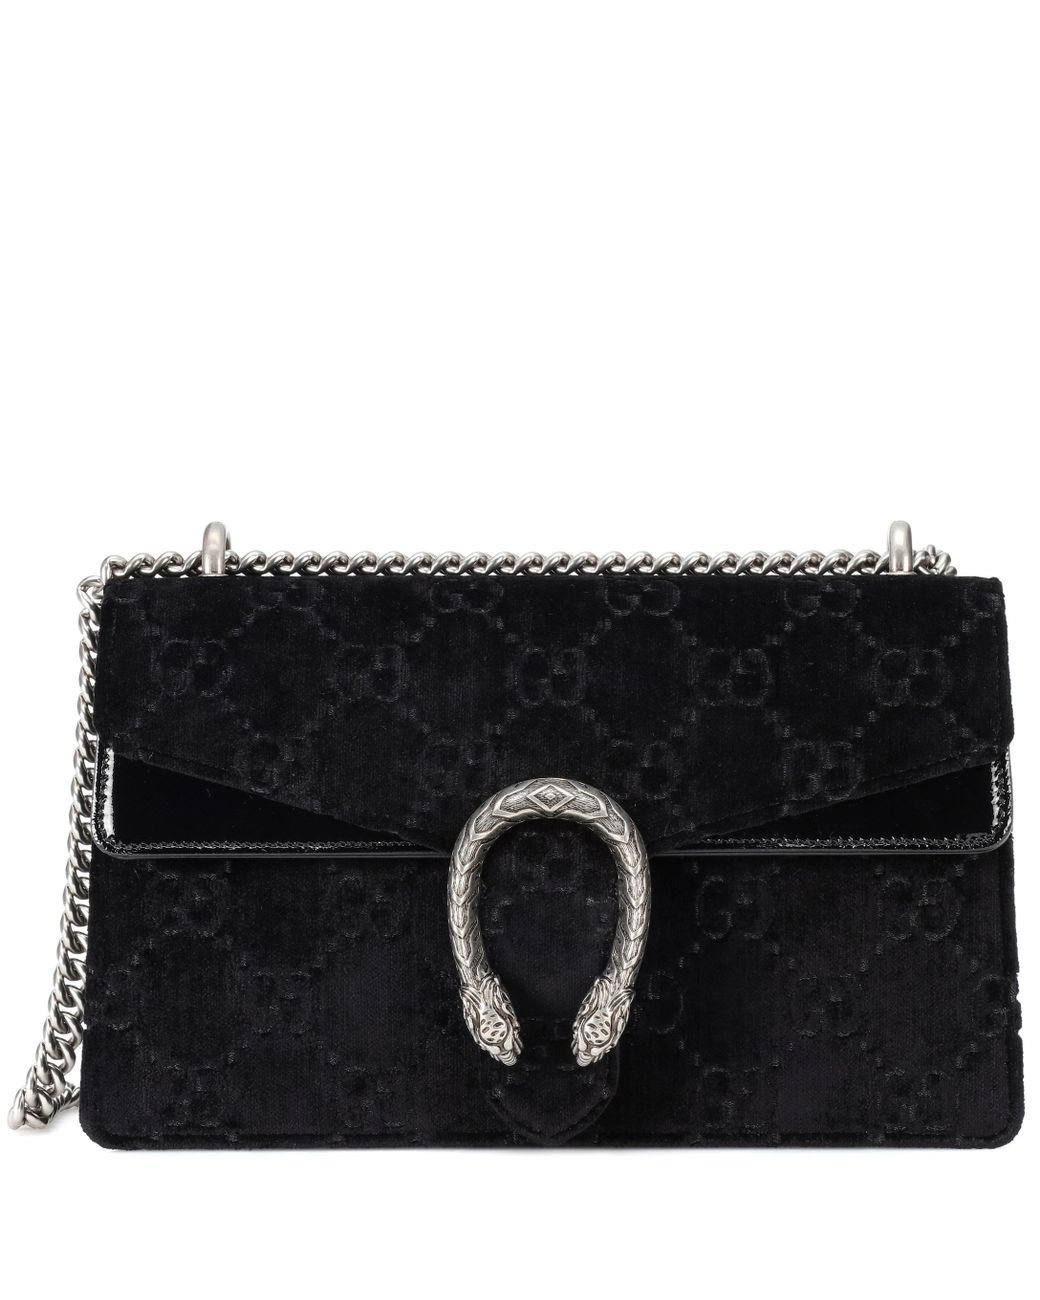 d65aa488e Gucci Dionysus GG Small Velvet Shoulder Bag in Black - Save 21% - Lyst